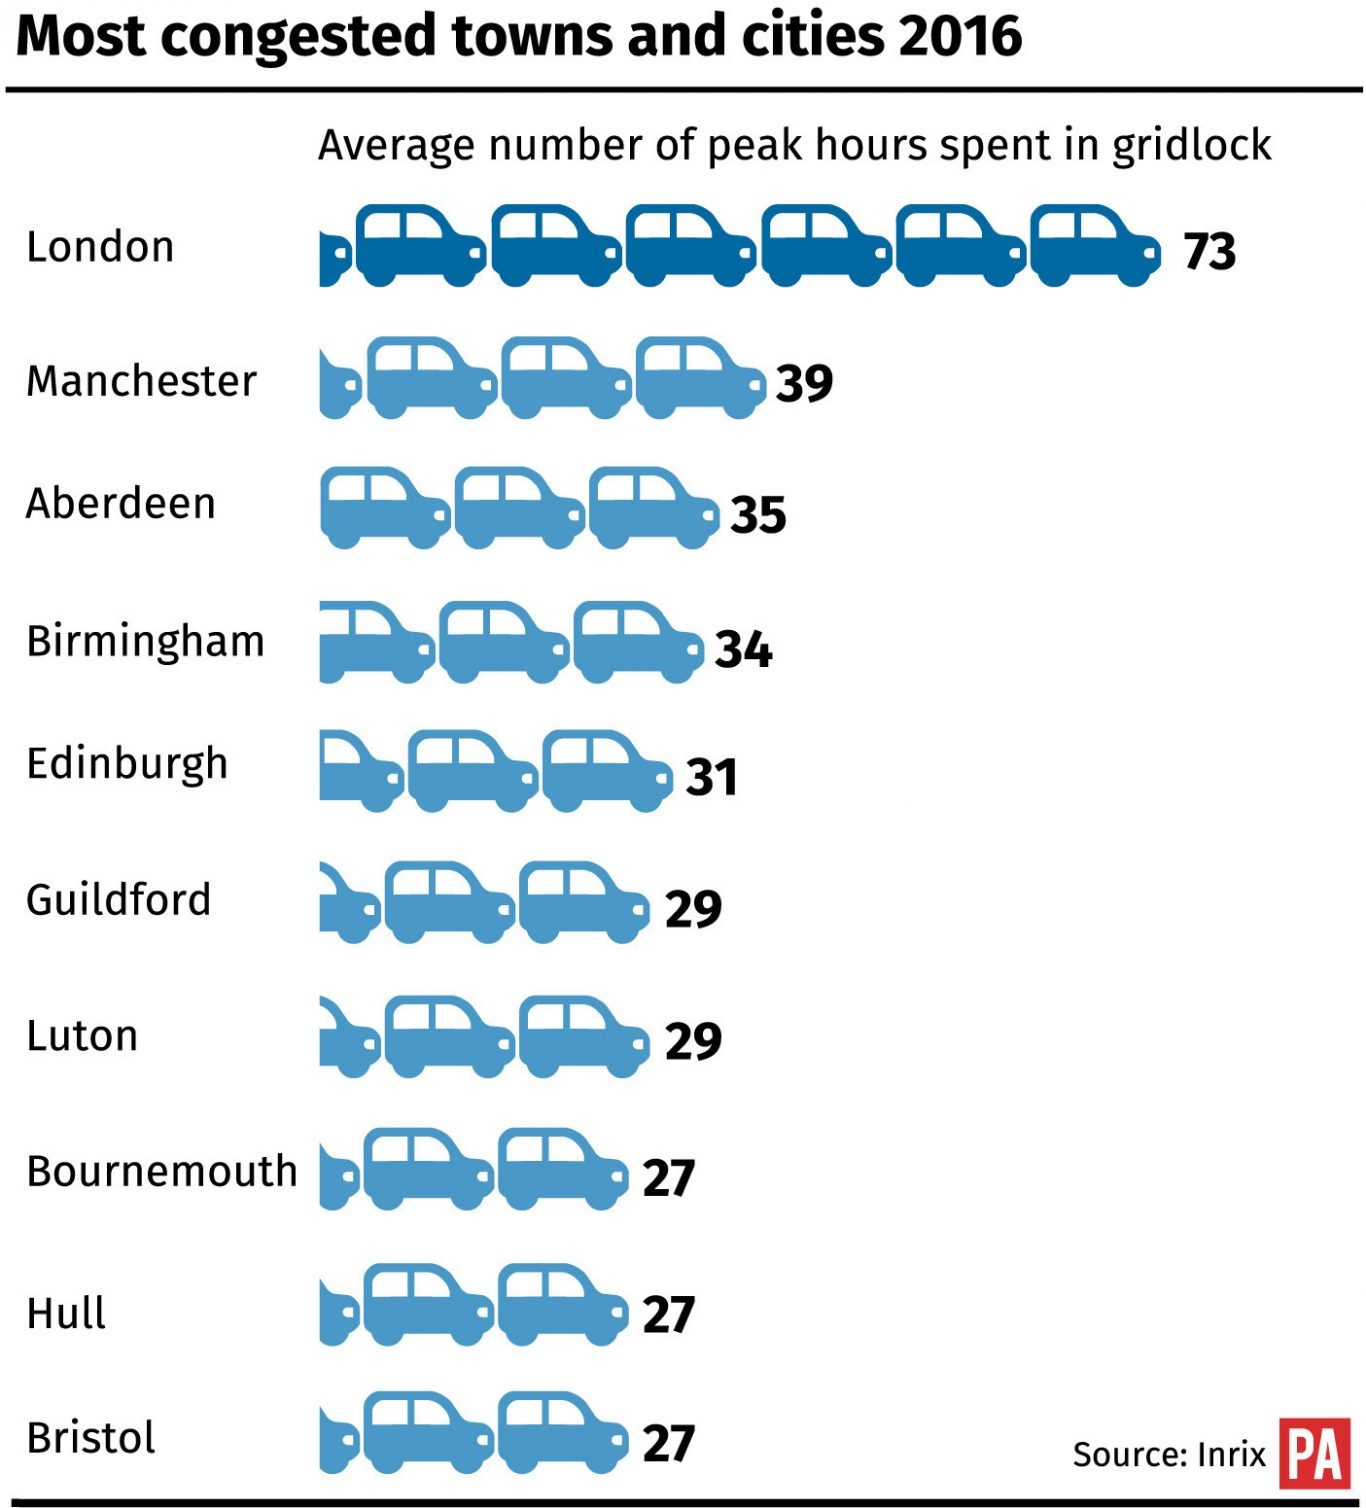 Most congested towns and cities in England 2016